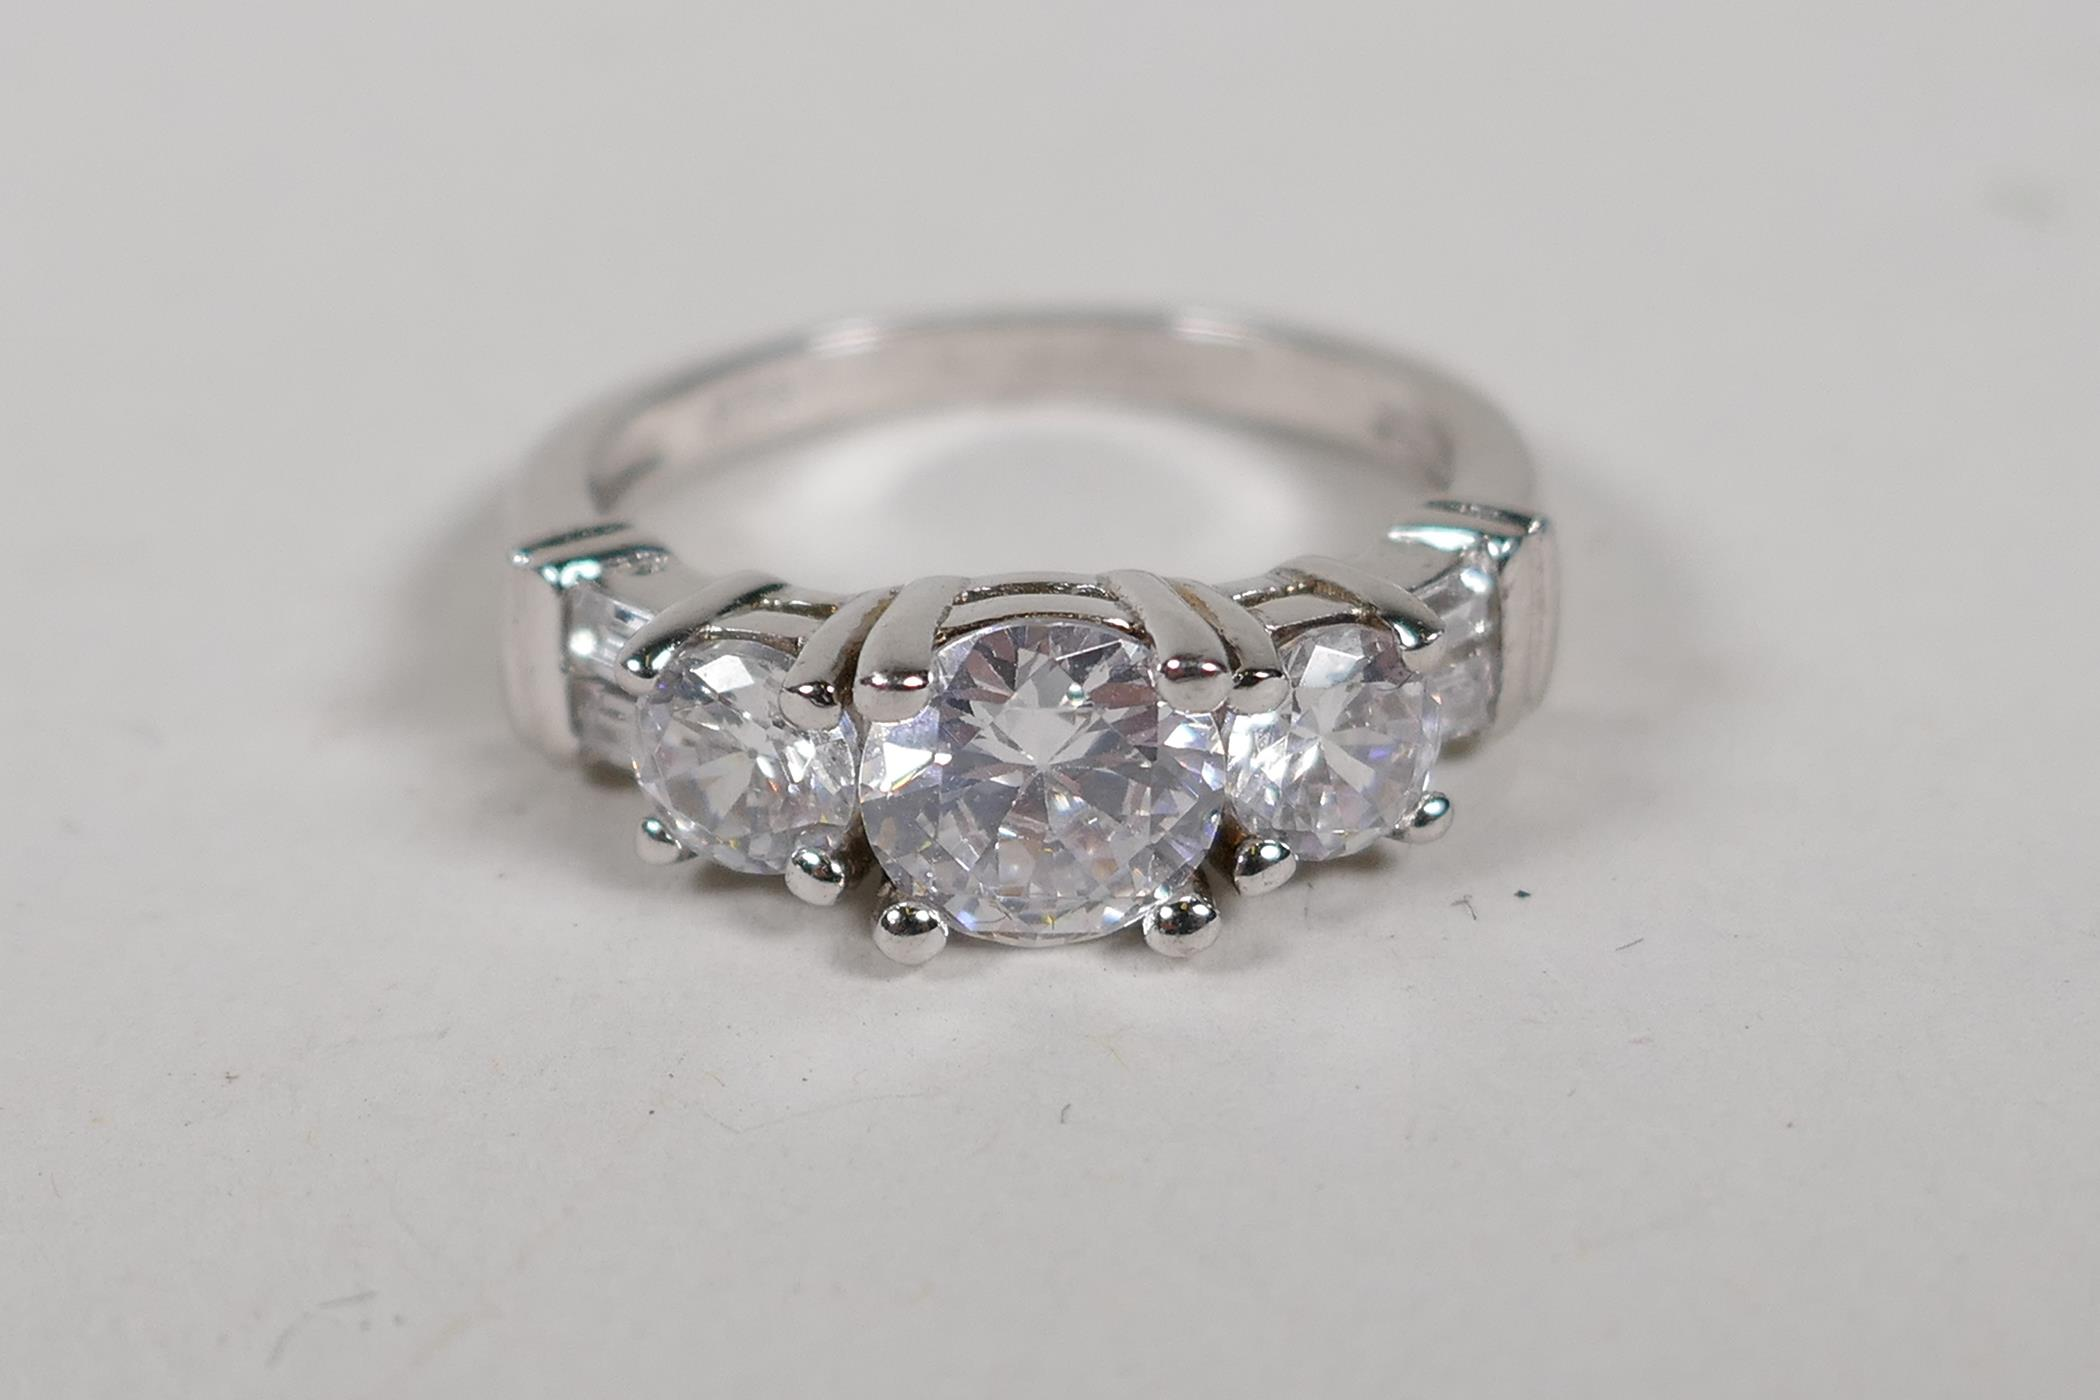 A 925 silver and cubic zirconia three stone dress ring, size N/O